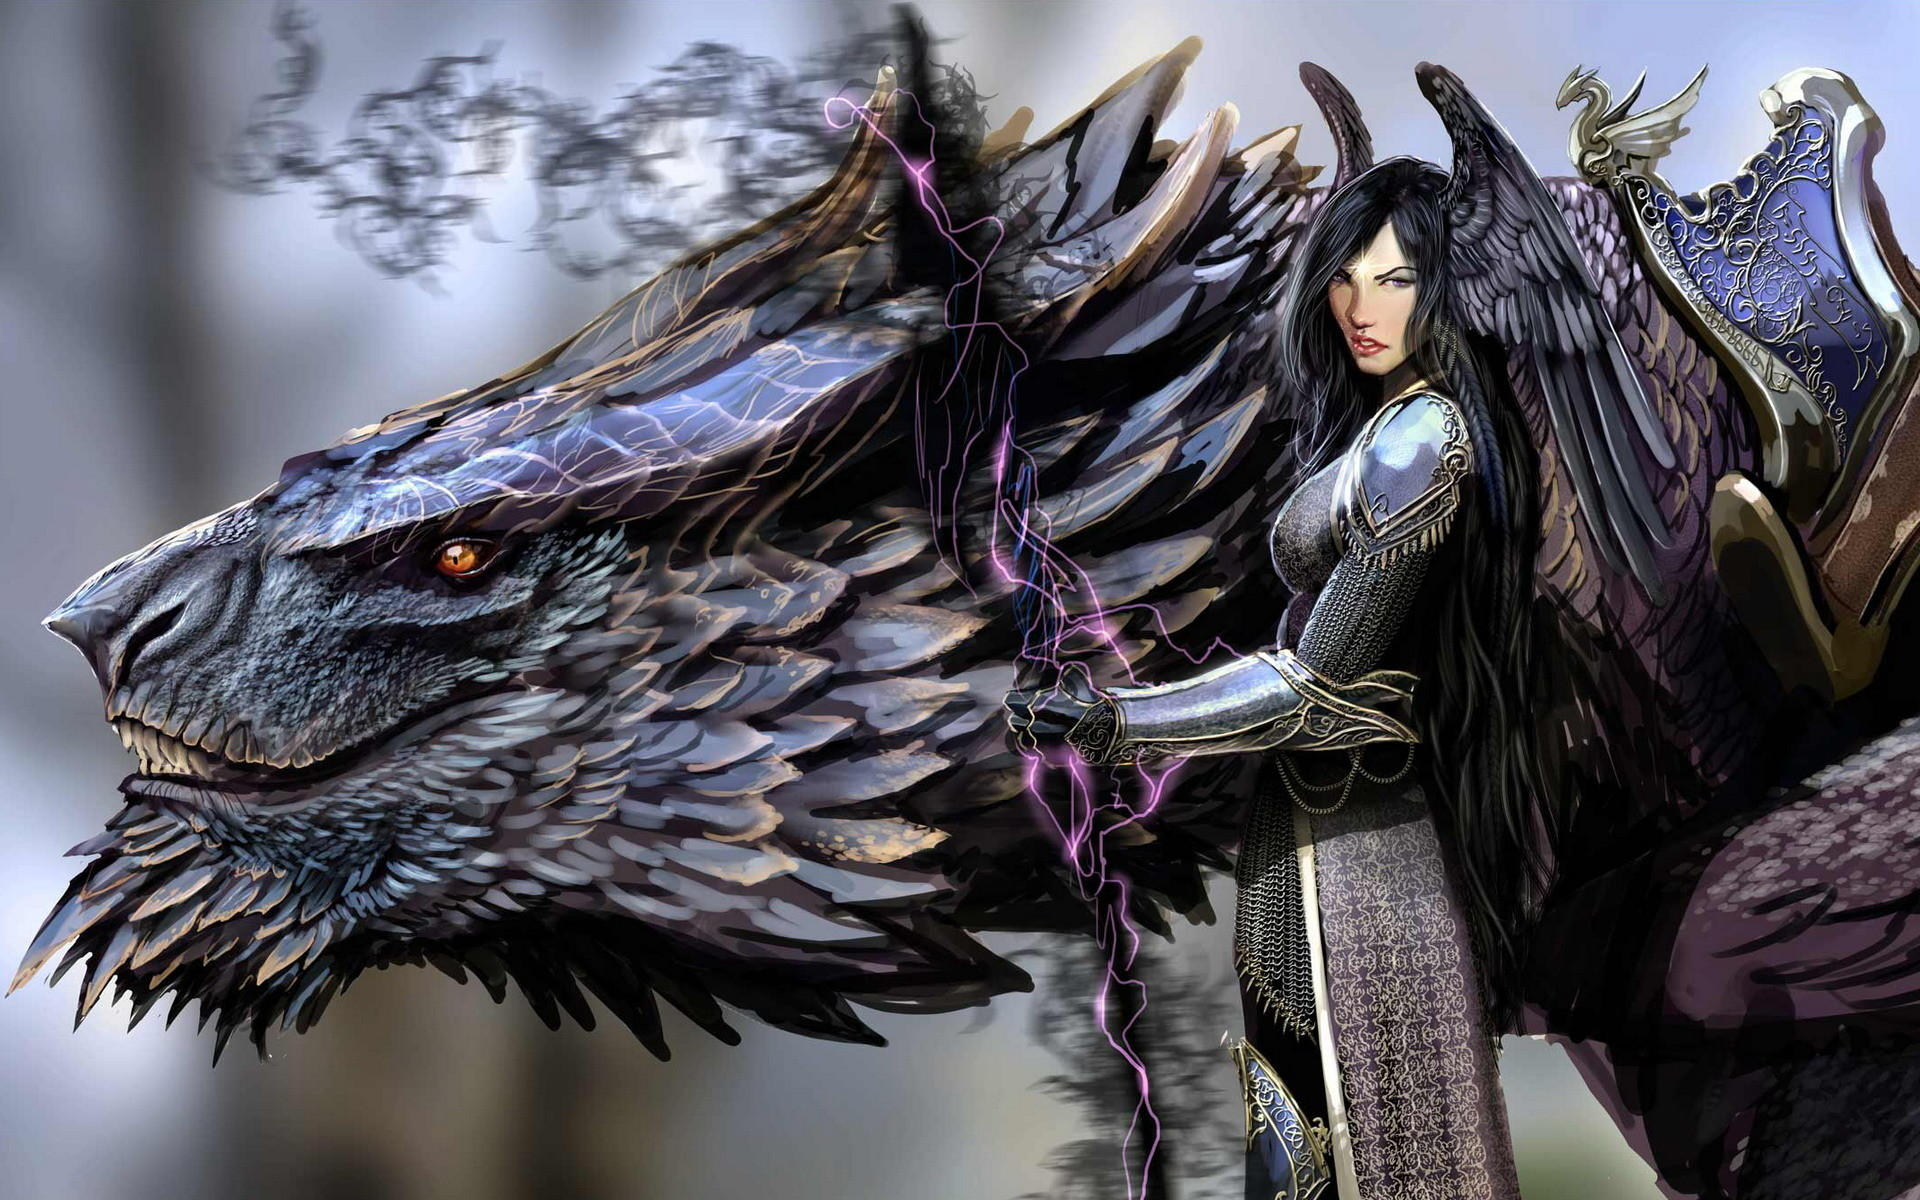 1920x1200 Amazing Dark Angel And Black Dragon Anime HD Wallpaper Picture Image